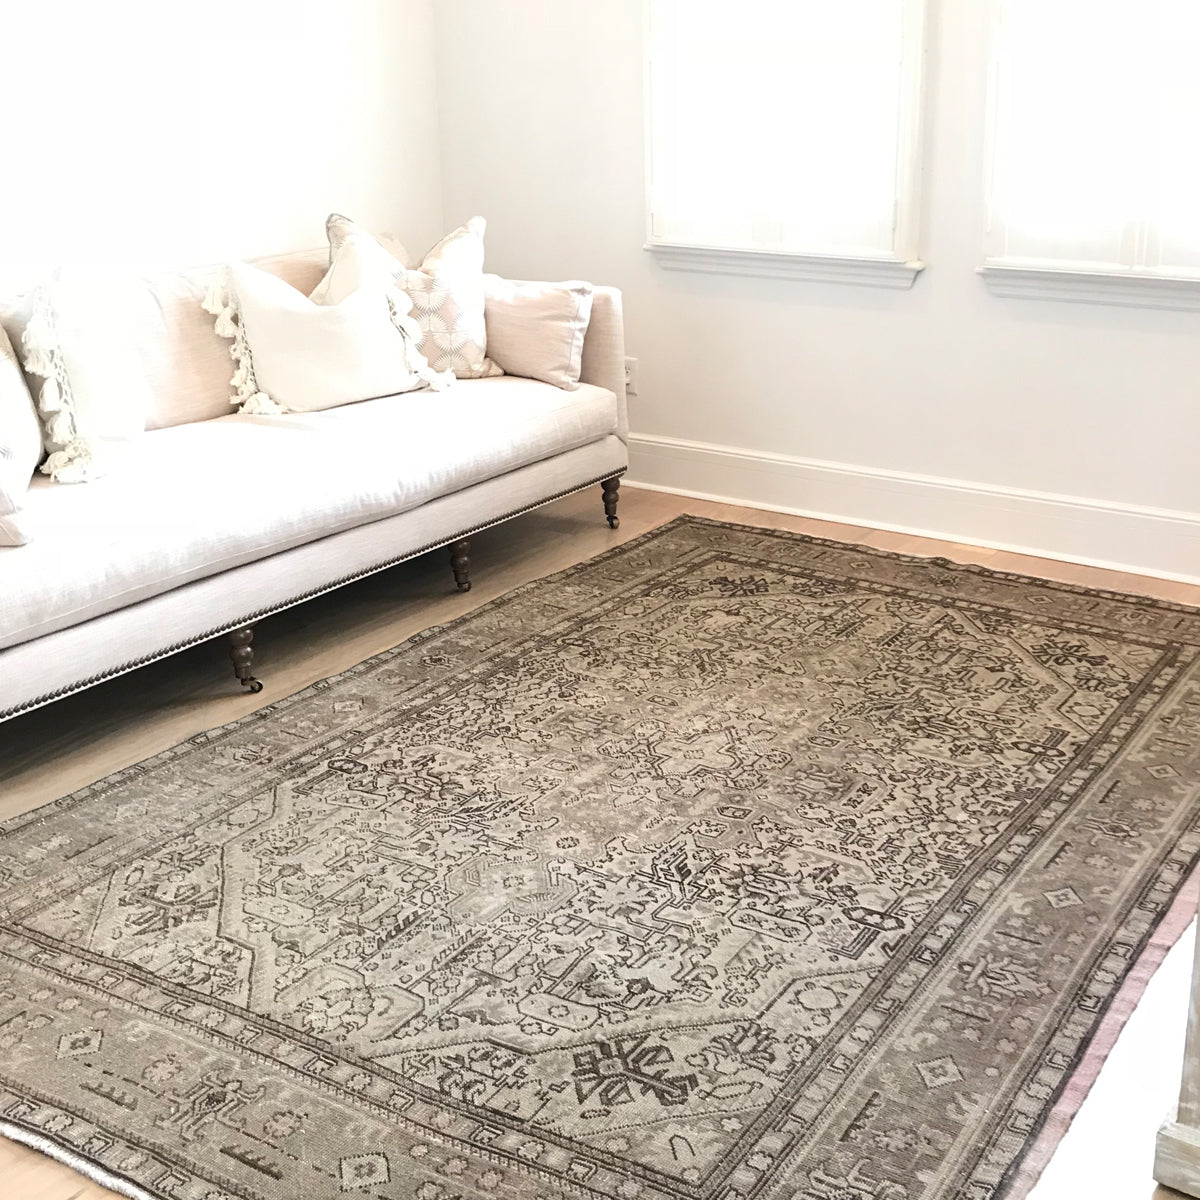 This vintage rug is Perisan and almost 7x9. There are subtle pops of pink throughout the design. 78x112 inches.